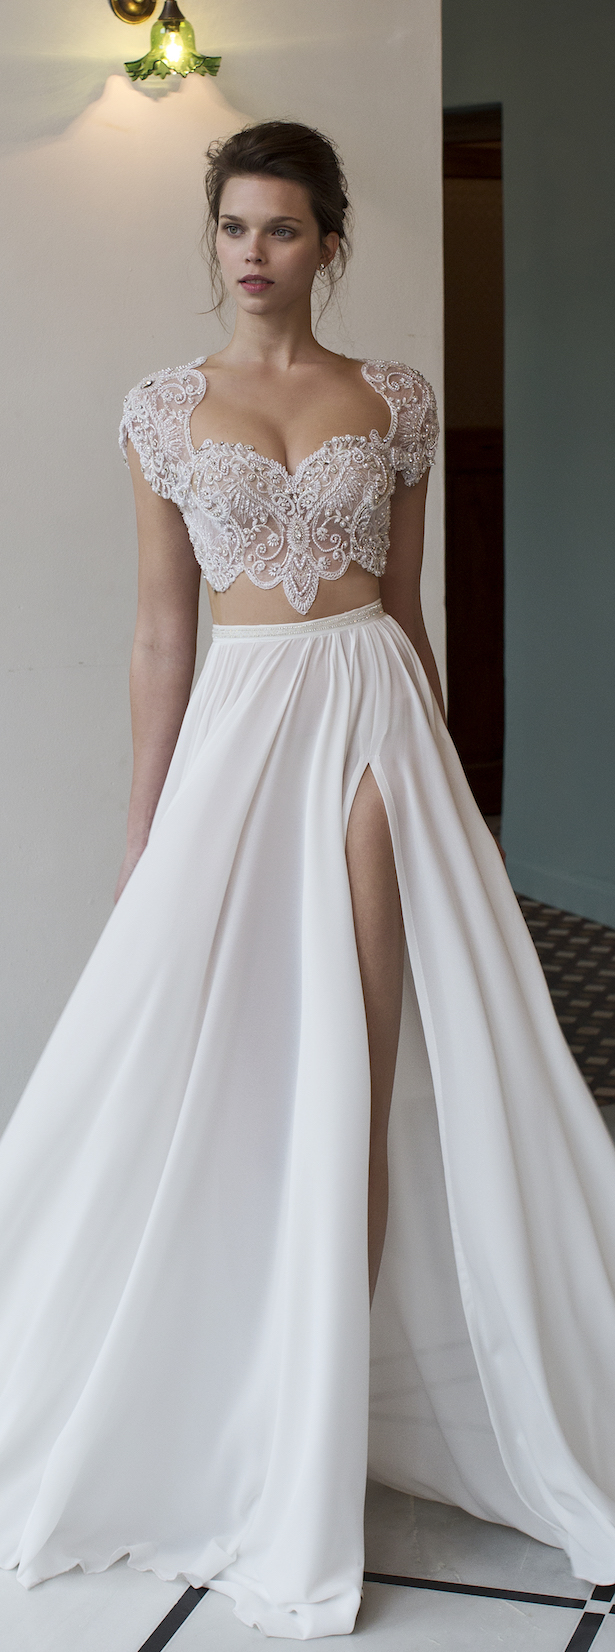 Bridal Trends: Two-Piece Wedding Dress - Riki Dalal Verona Collection 2016